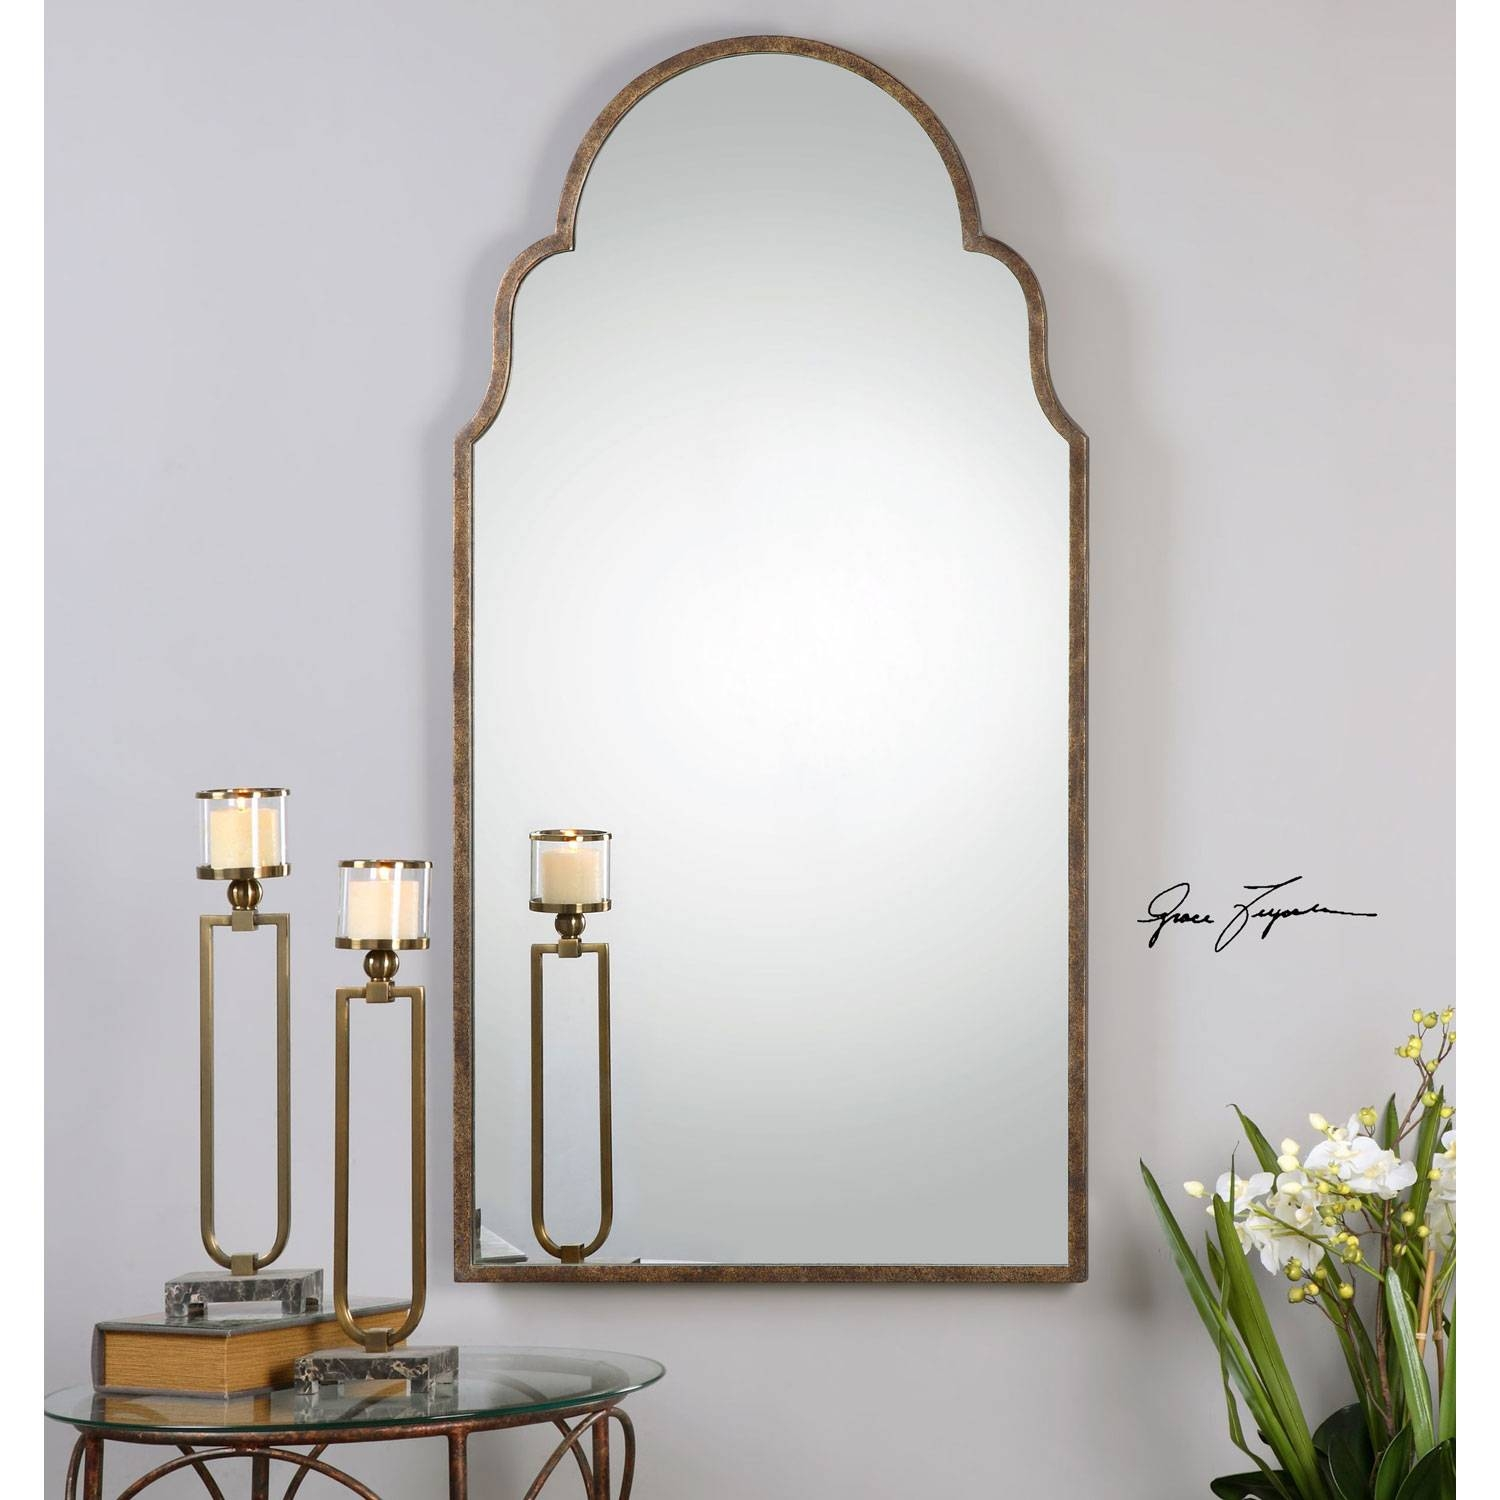 Brayden Arch Mirror | Vanity Decoration With Regard To Arched Wall Mirrors (View 7 of 15)